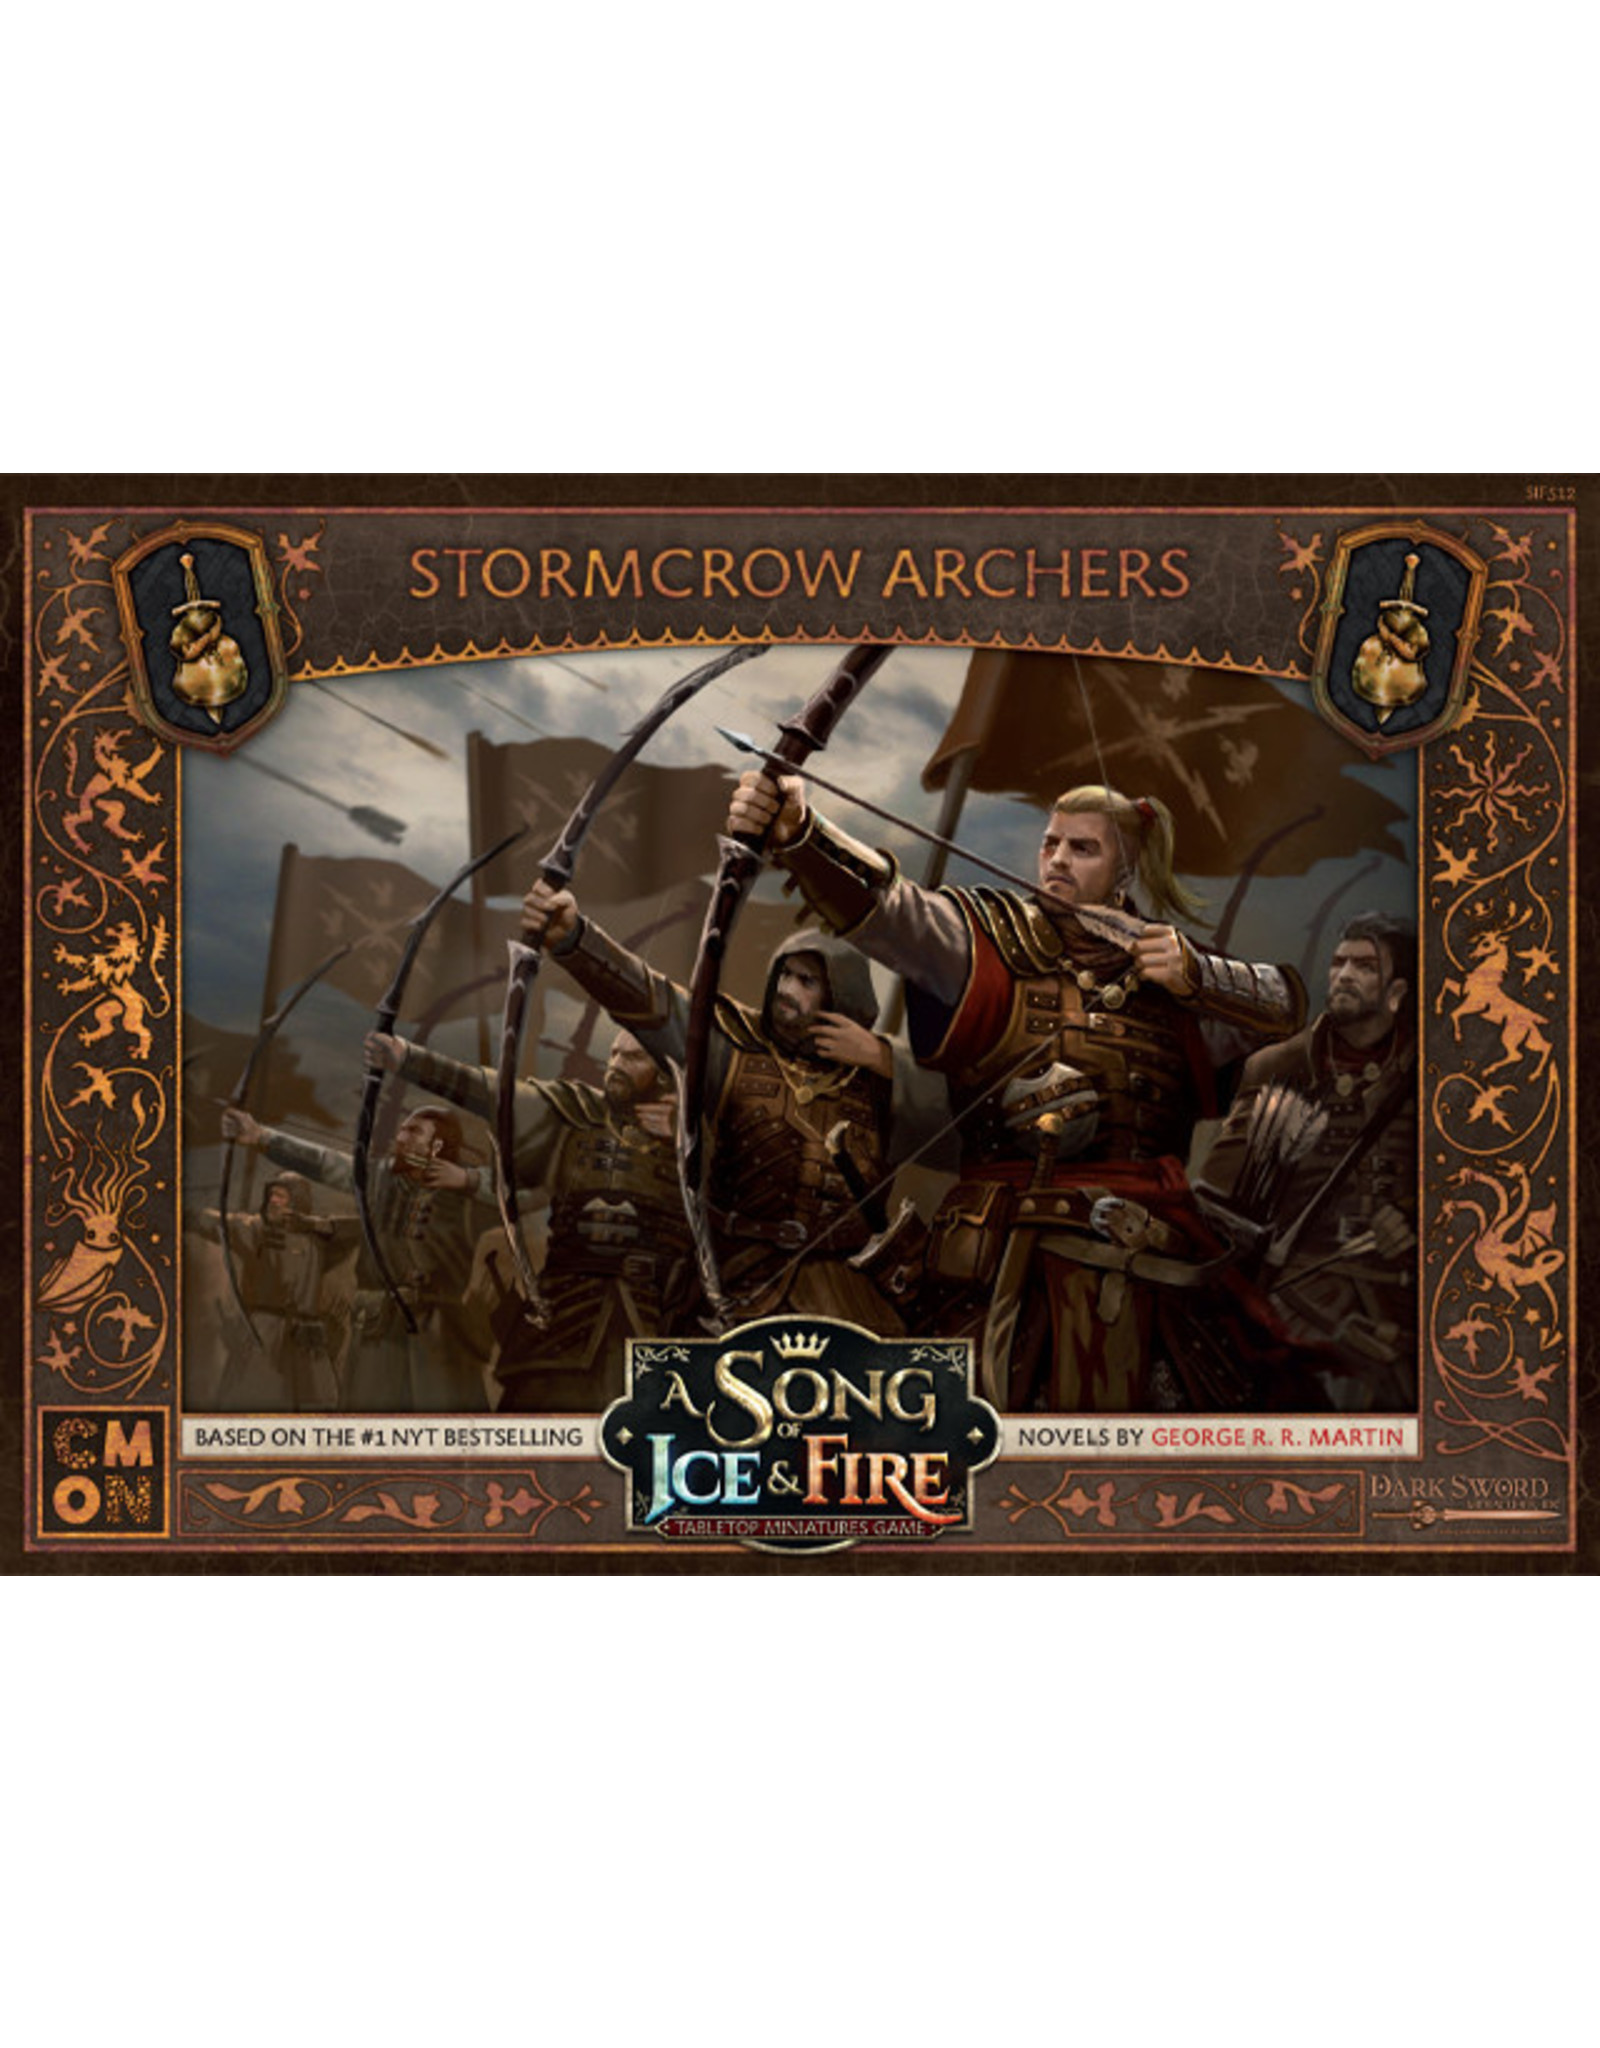 Cool Mini or Not A Song of Ice & Fire Tabletop Miniatures Game: Stormcrows Archers